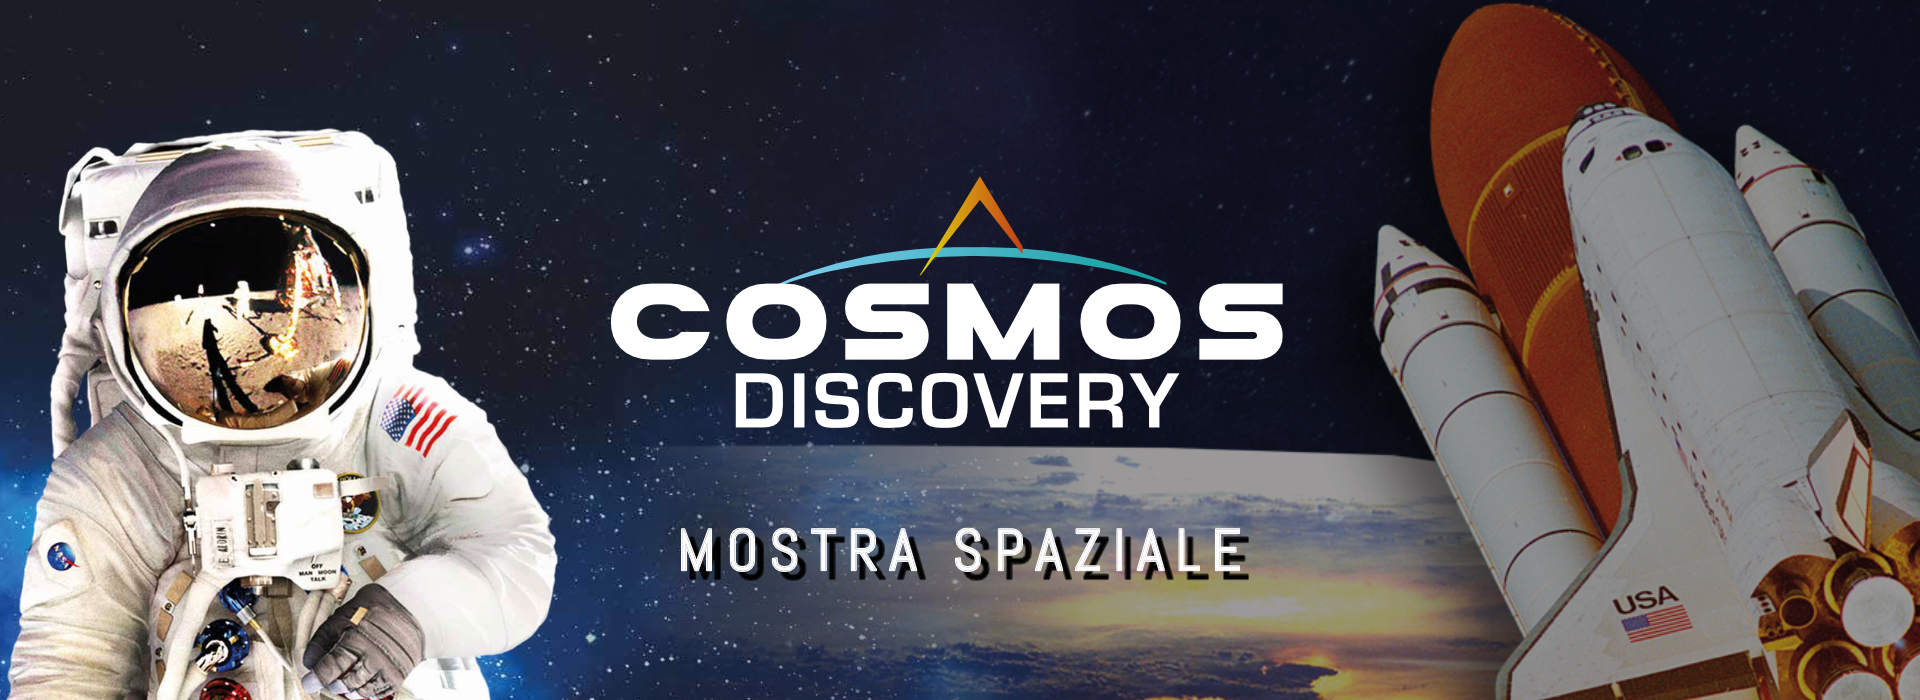 Mostra Cosmos Discovery Roma 2017